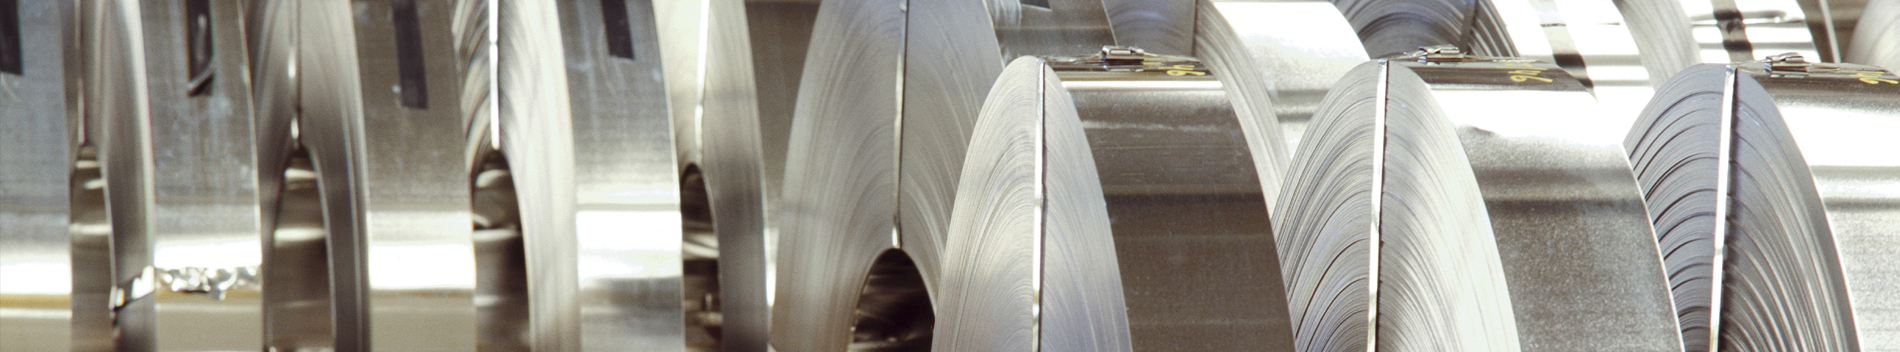 Nickel Alloys, Stainless steel & Titanium Cladding